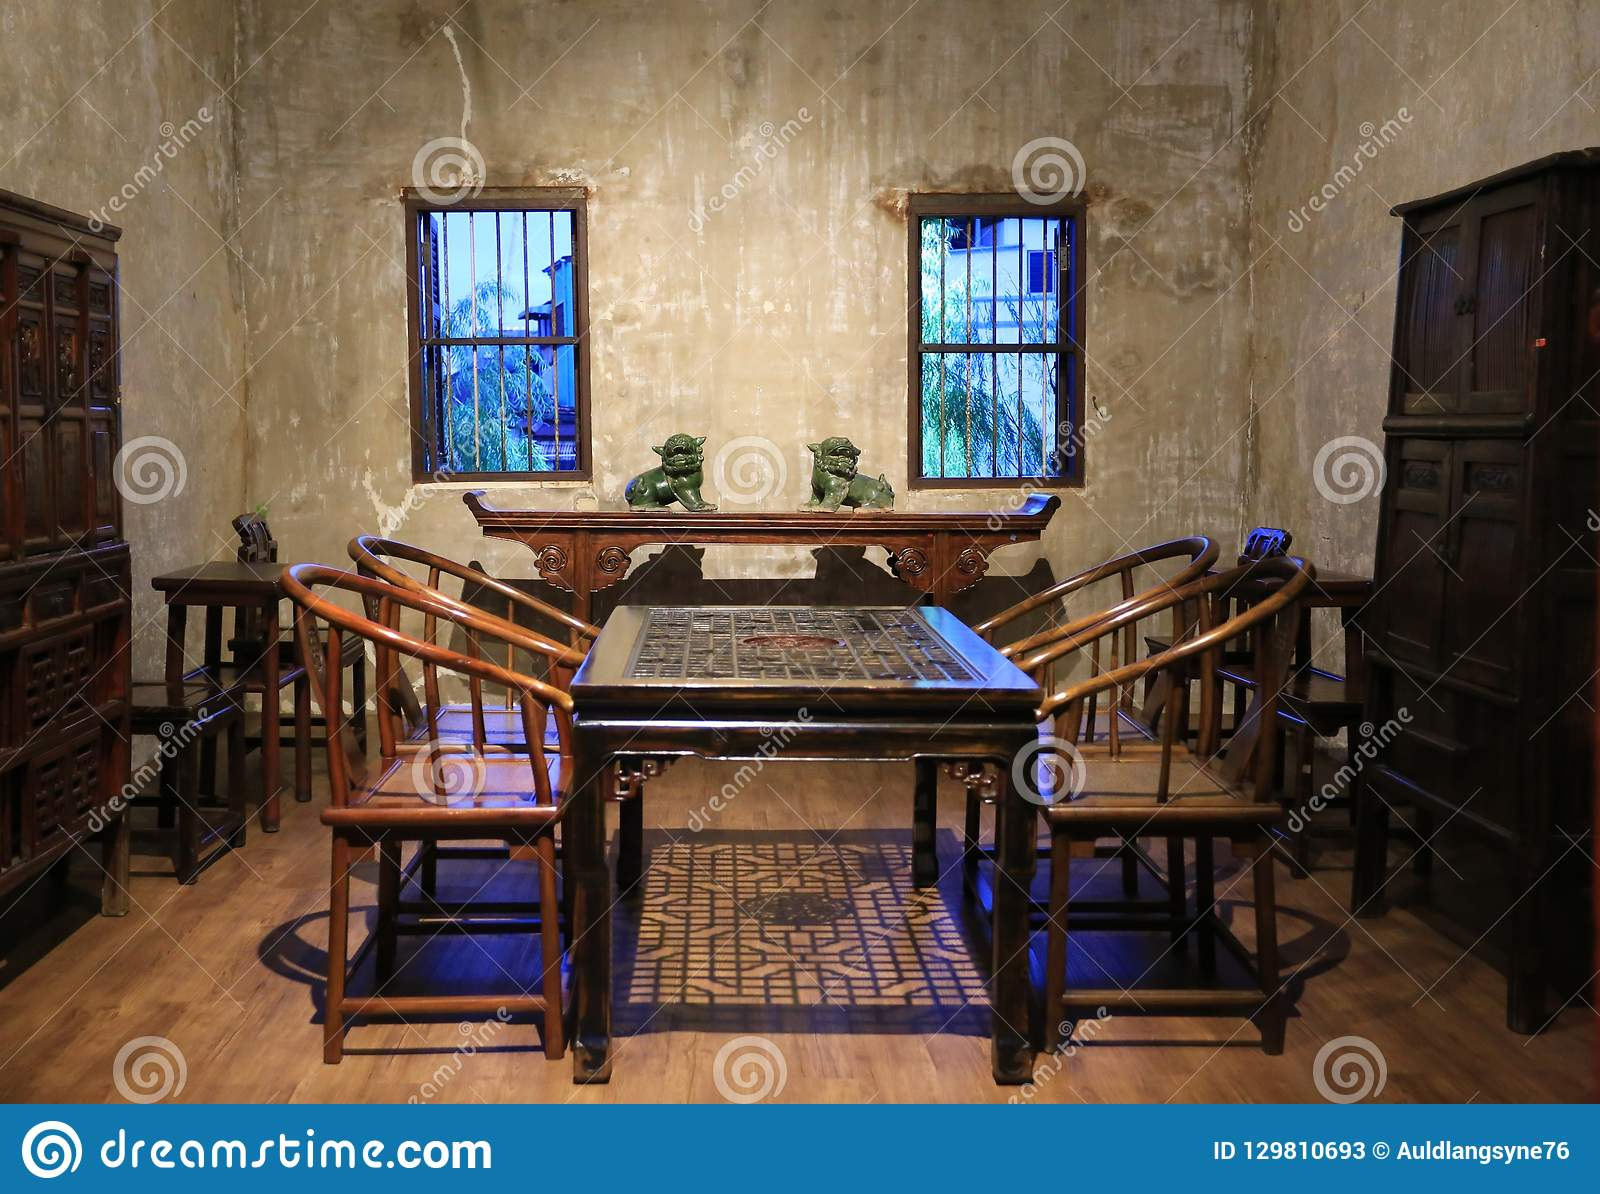 Chinese Style Vintage Wooden Dining Room Display Show In Lhong 1919 Bangkok Stock Image Image Of Luxury Residence 129810693,Design Your Own Koozies No Minimum